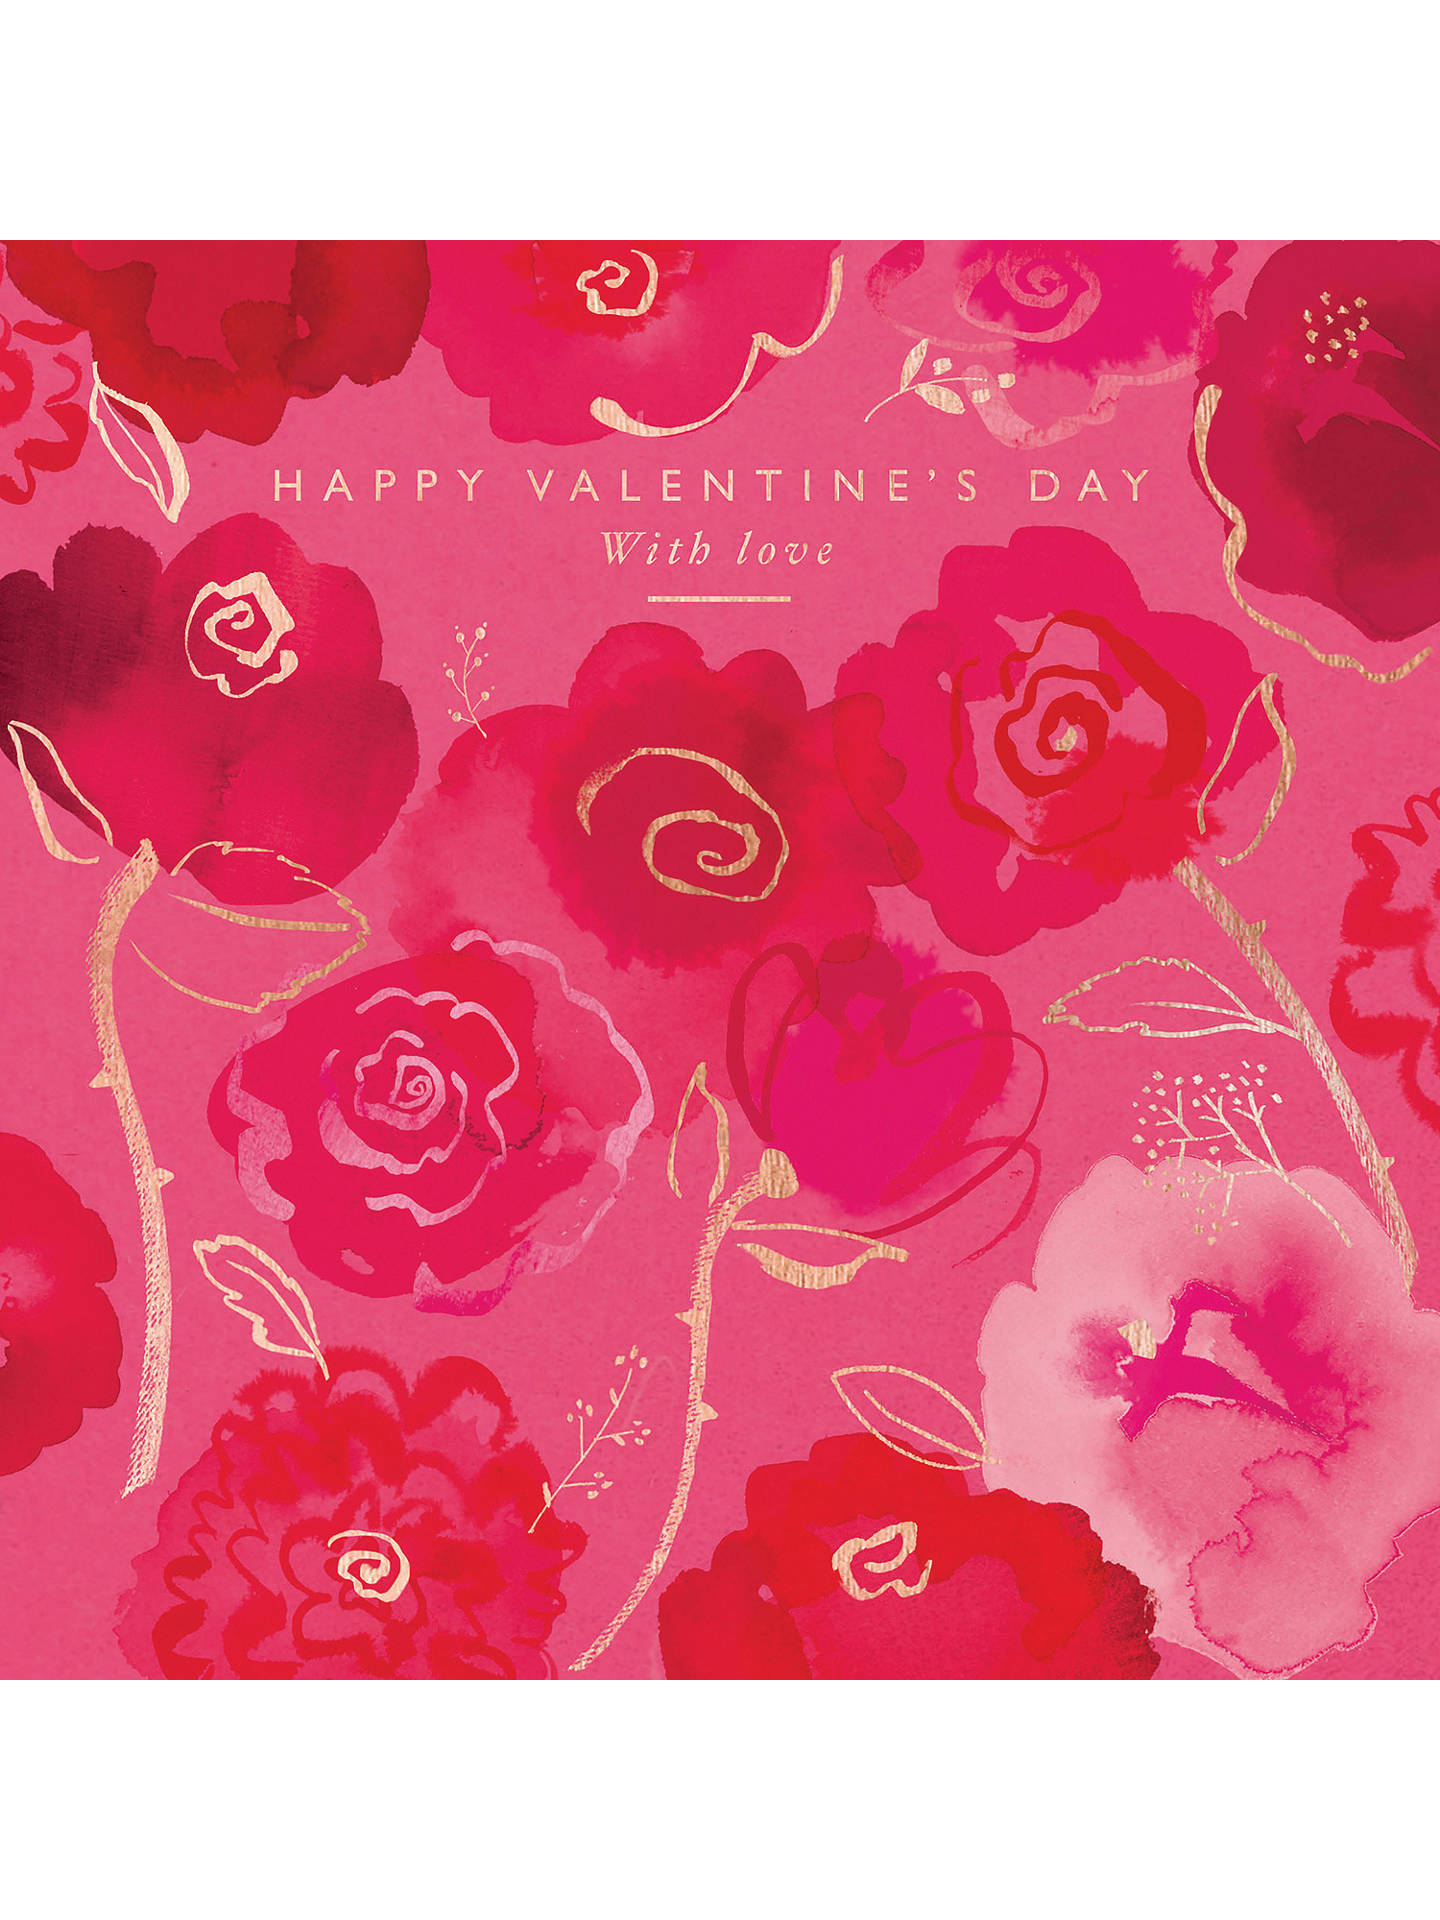 BuyWoodmansterne With Love Valentines Day Card Online At Johnlewis